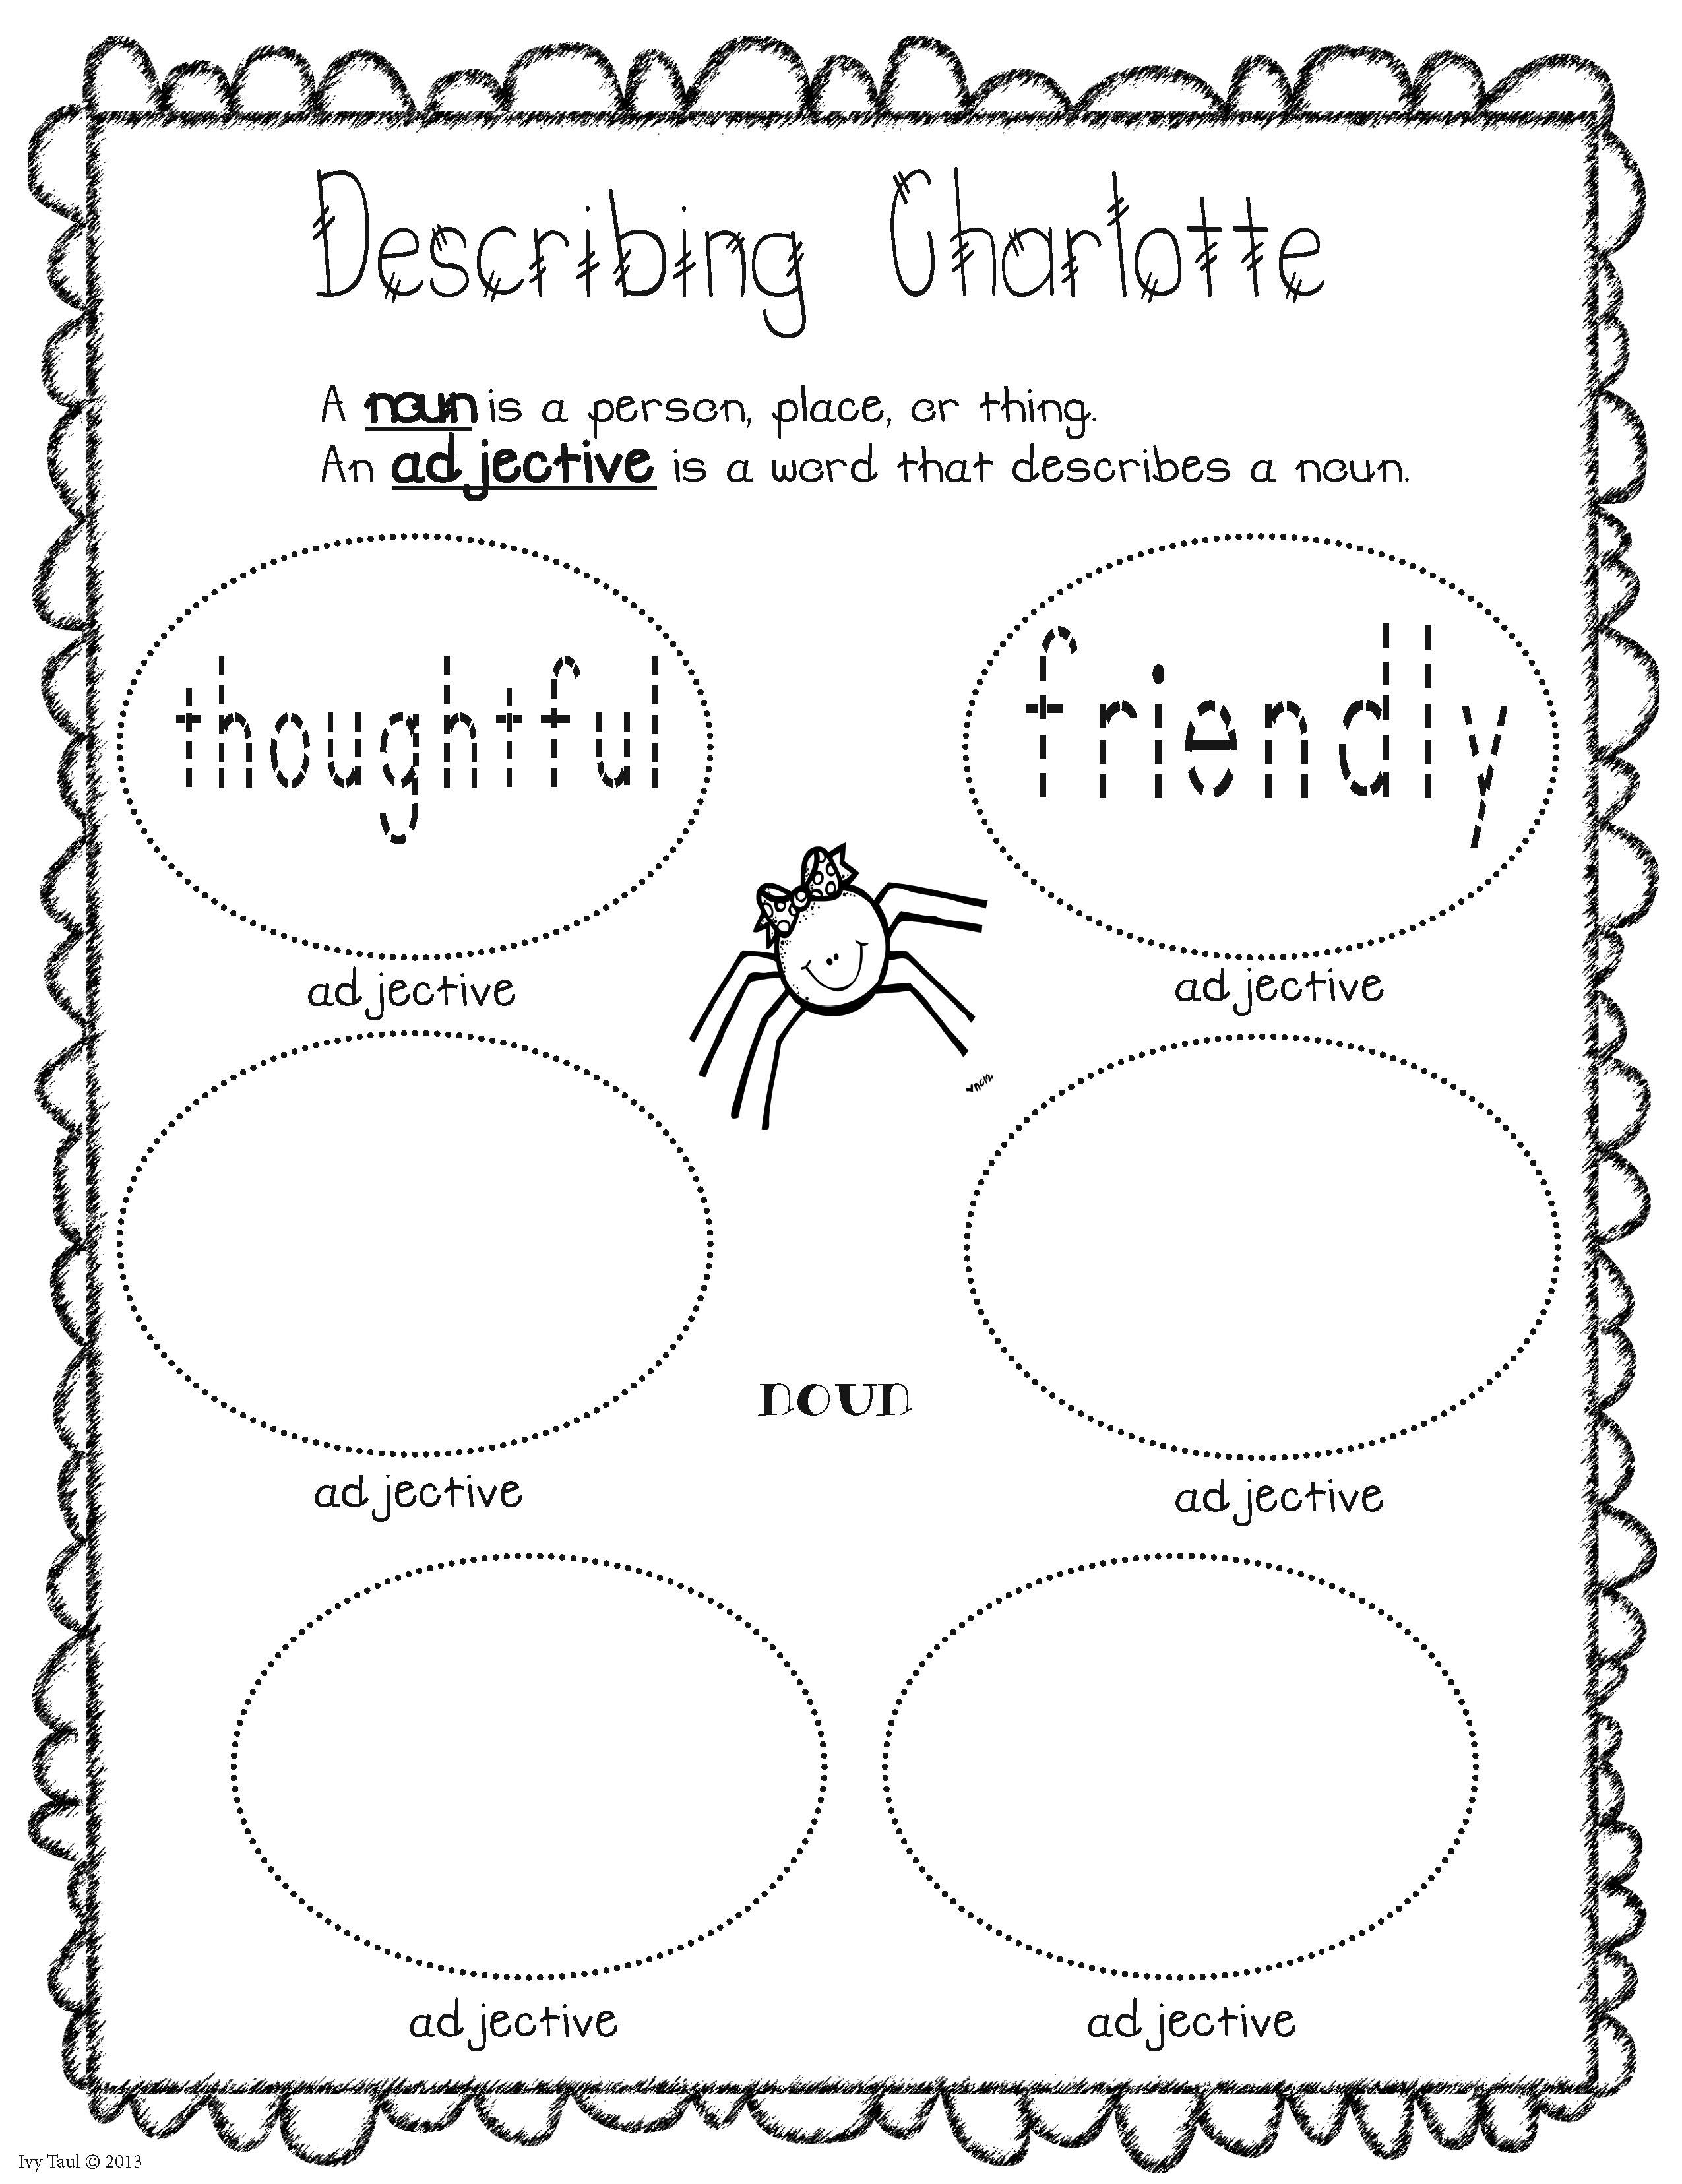 Charlotte S Web Cast Of Characters Booklet Charlottes Web Charlottes Web Activities Book Study [ 3311 x 2550 Pixel ]